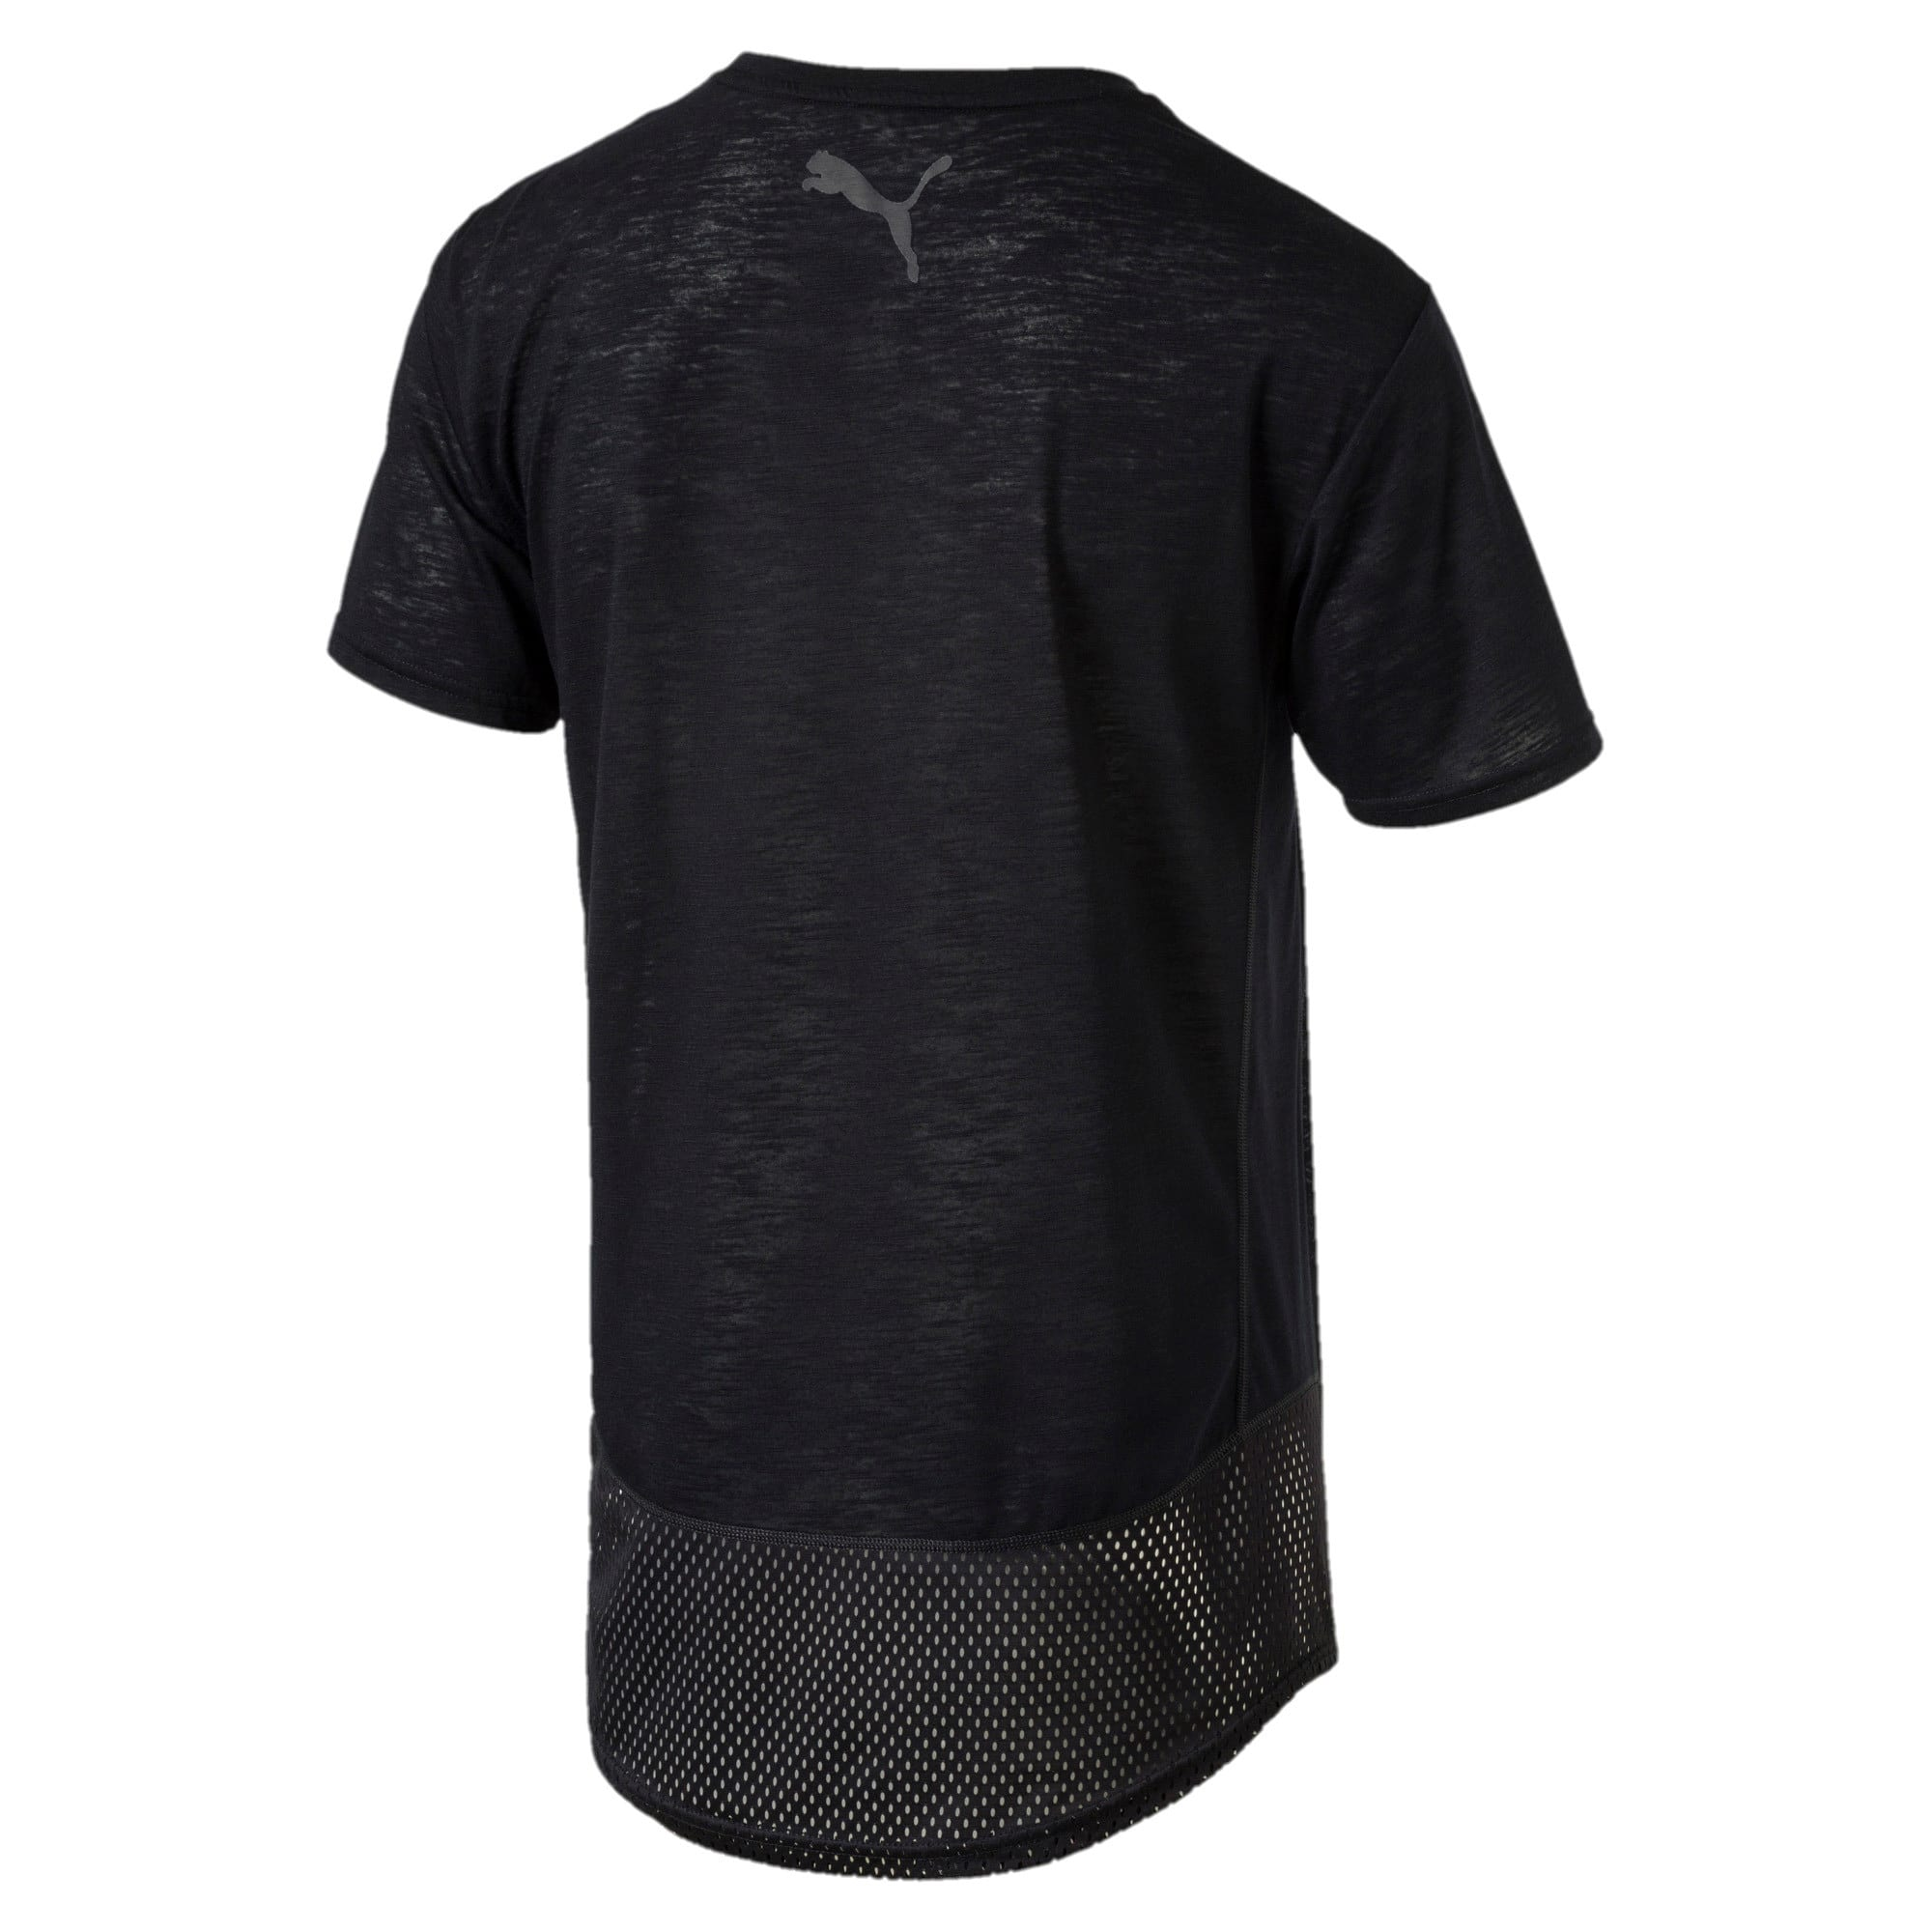 Thumbnail 4 of Active Training Men's Dri-Release® Novelty Graphic T-Shirt, Puma Black Heather, medium-IND